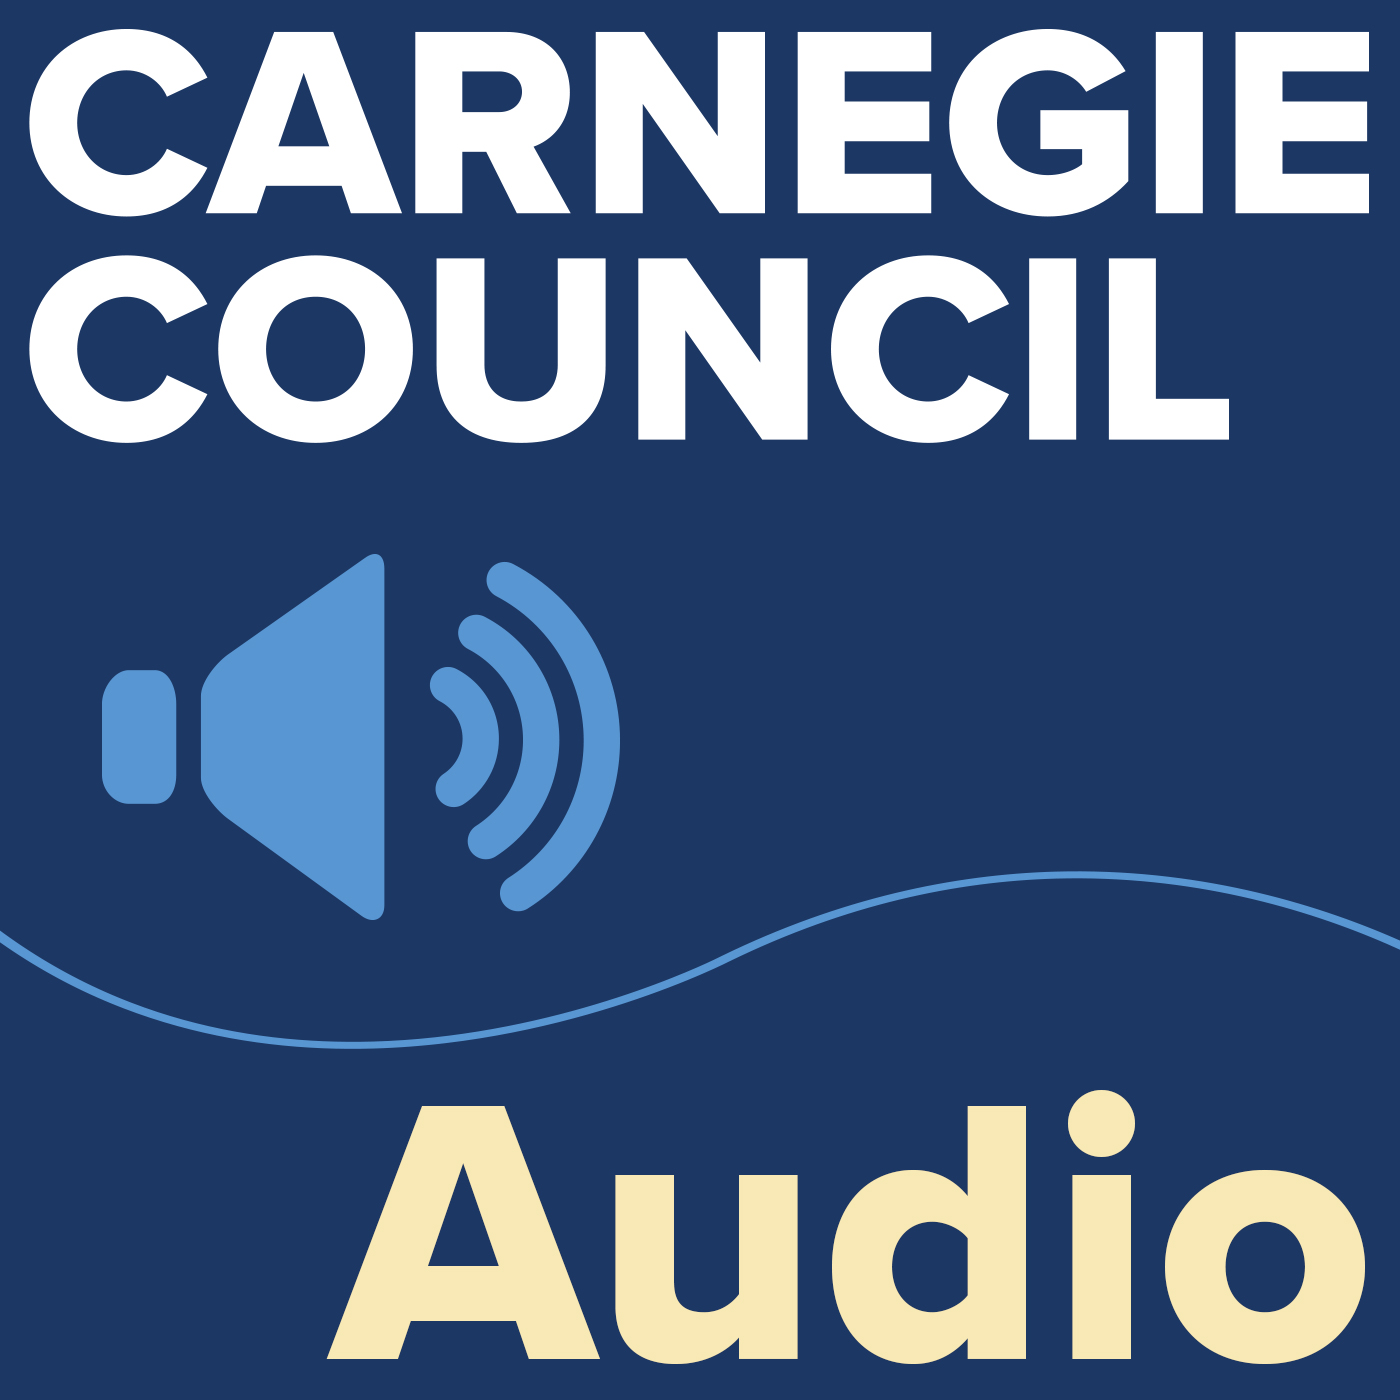 Carnegie Council Audio Podcast show art